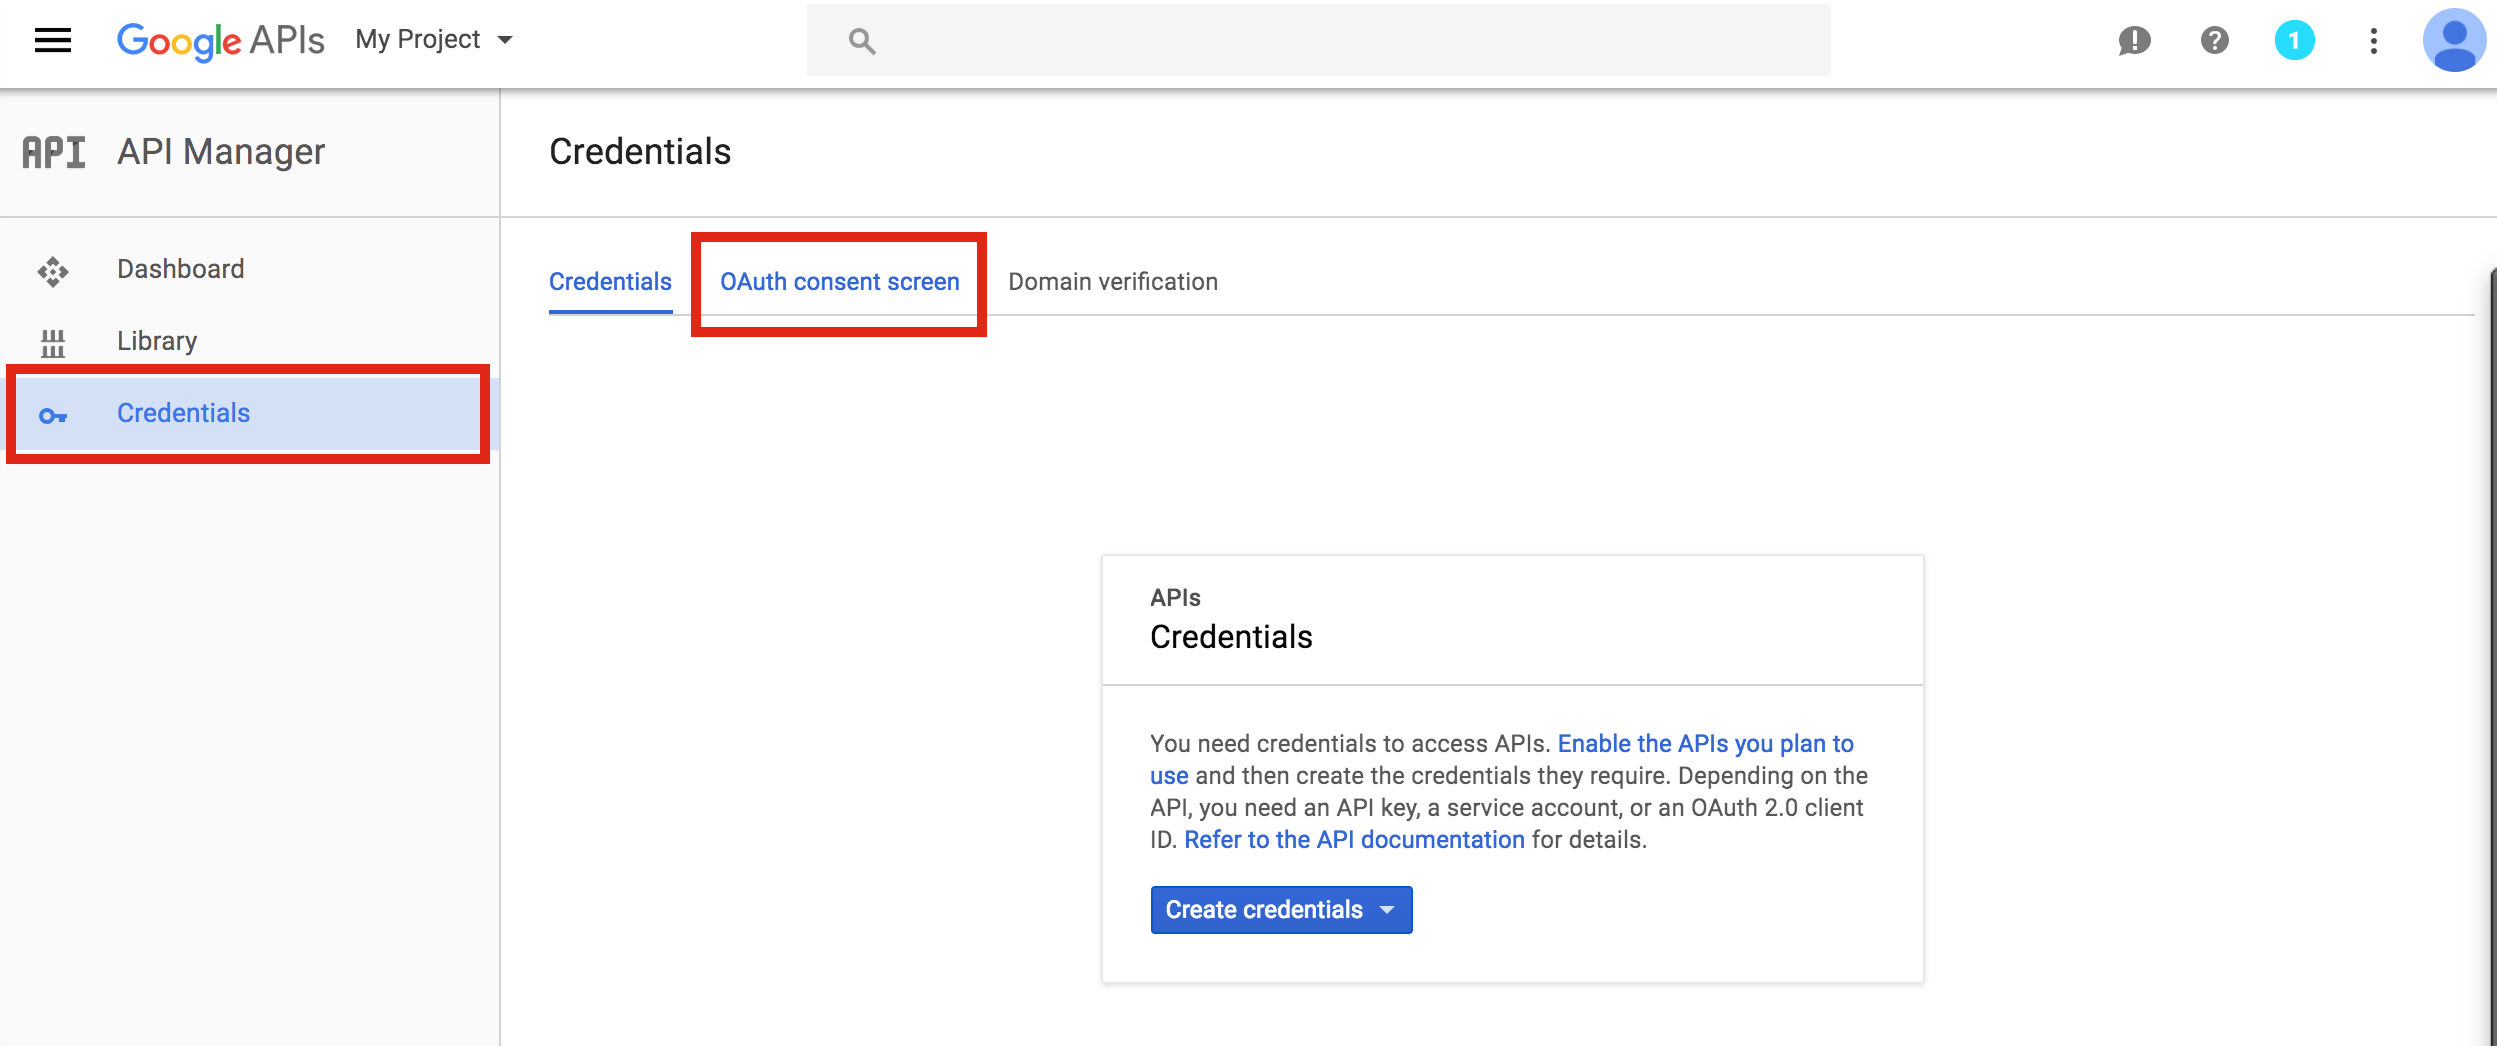 How can I get my Google account Client ID and Client Secret key